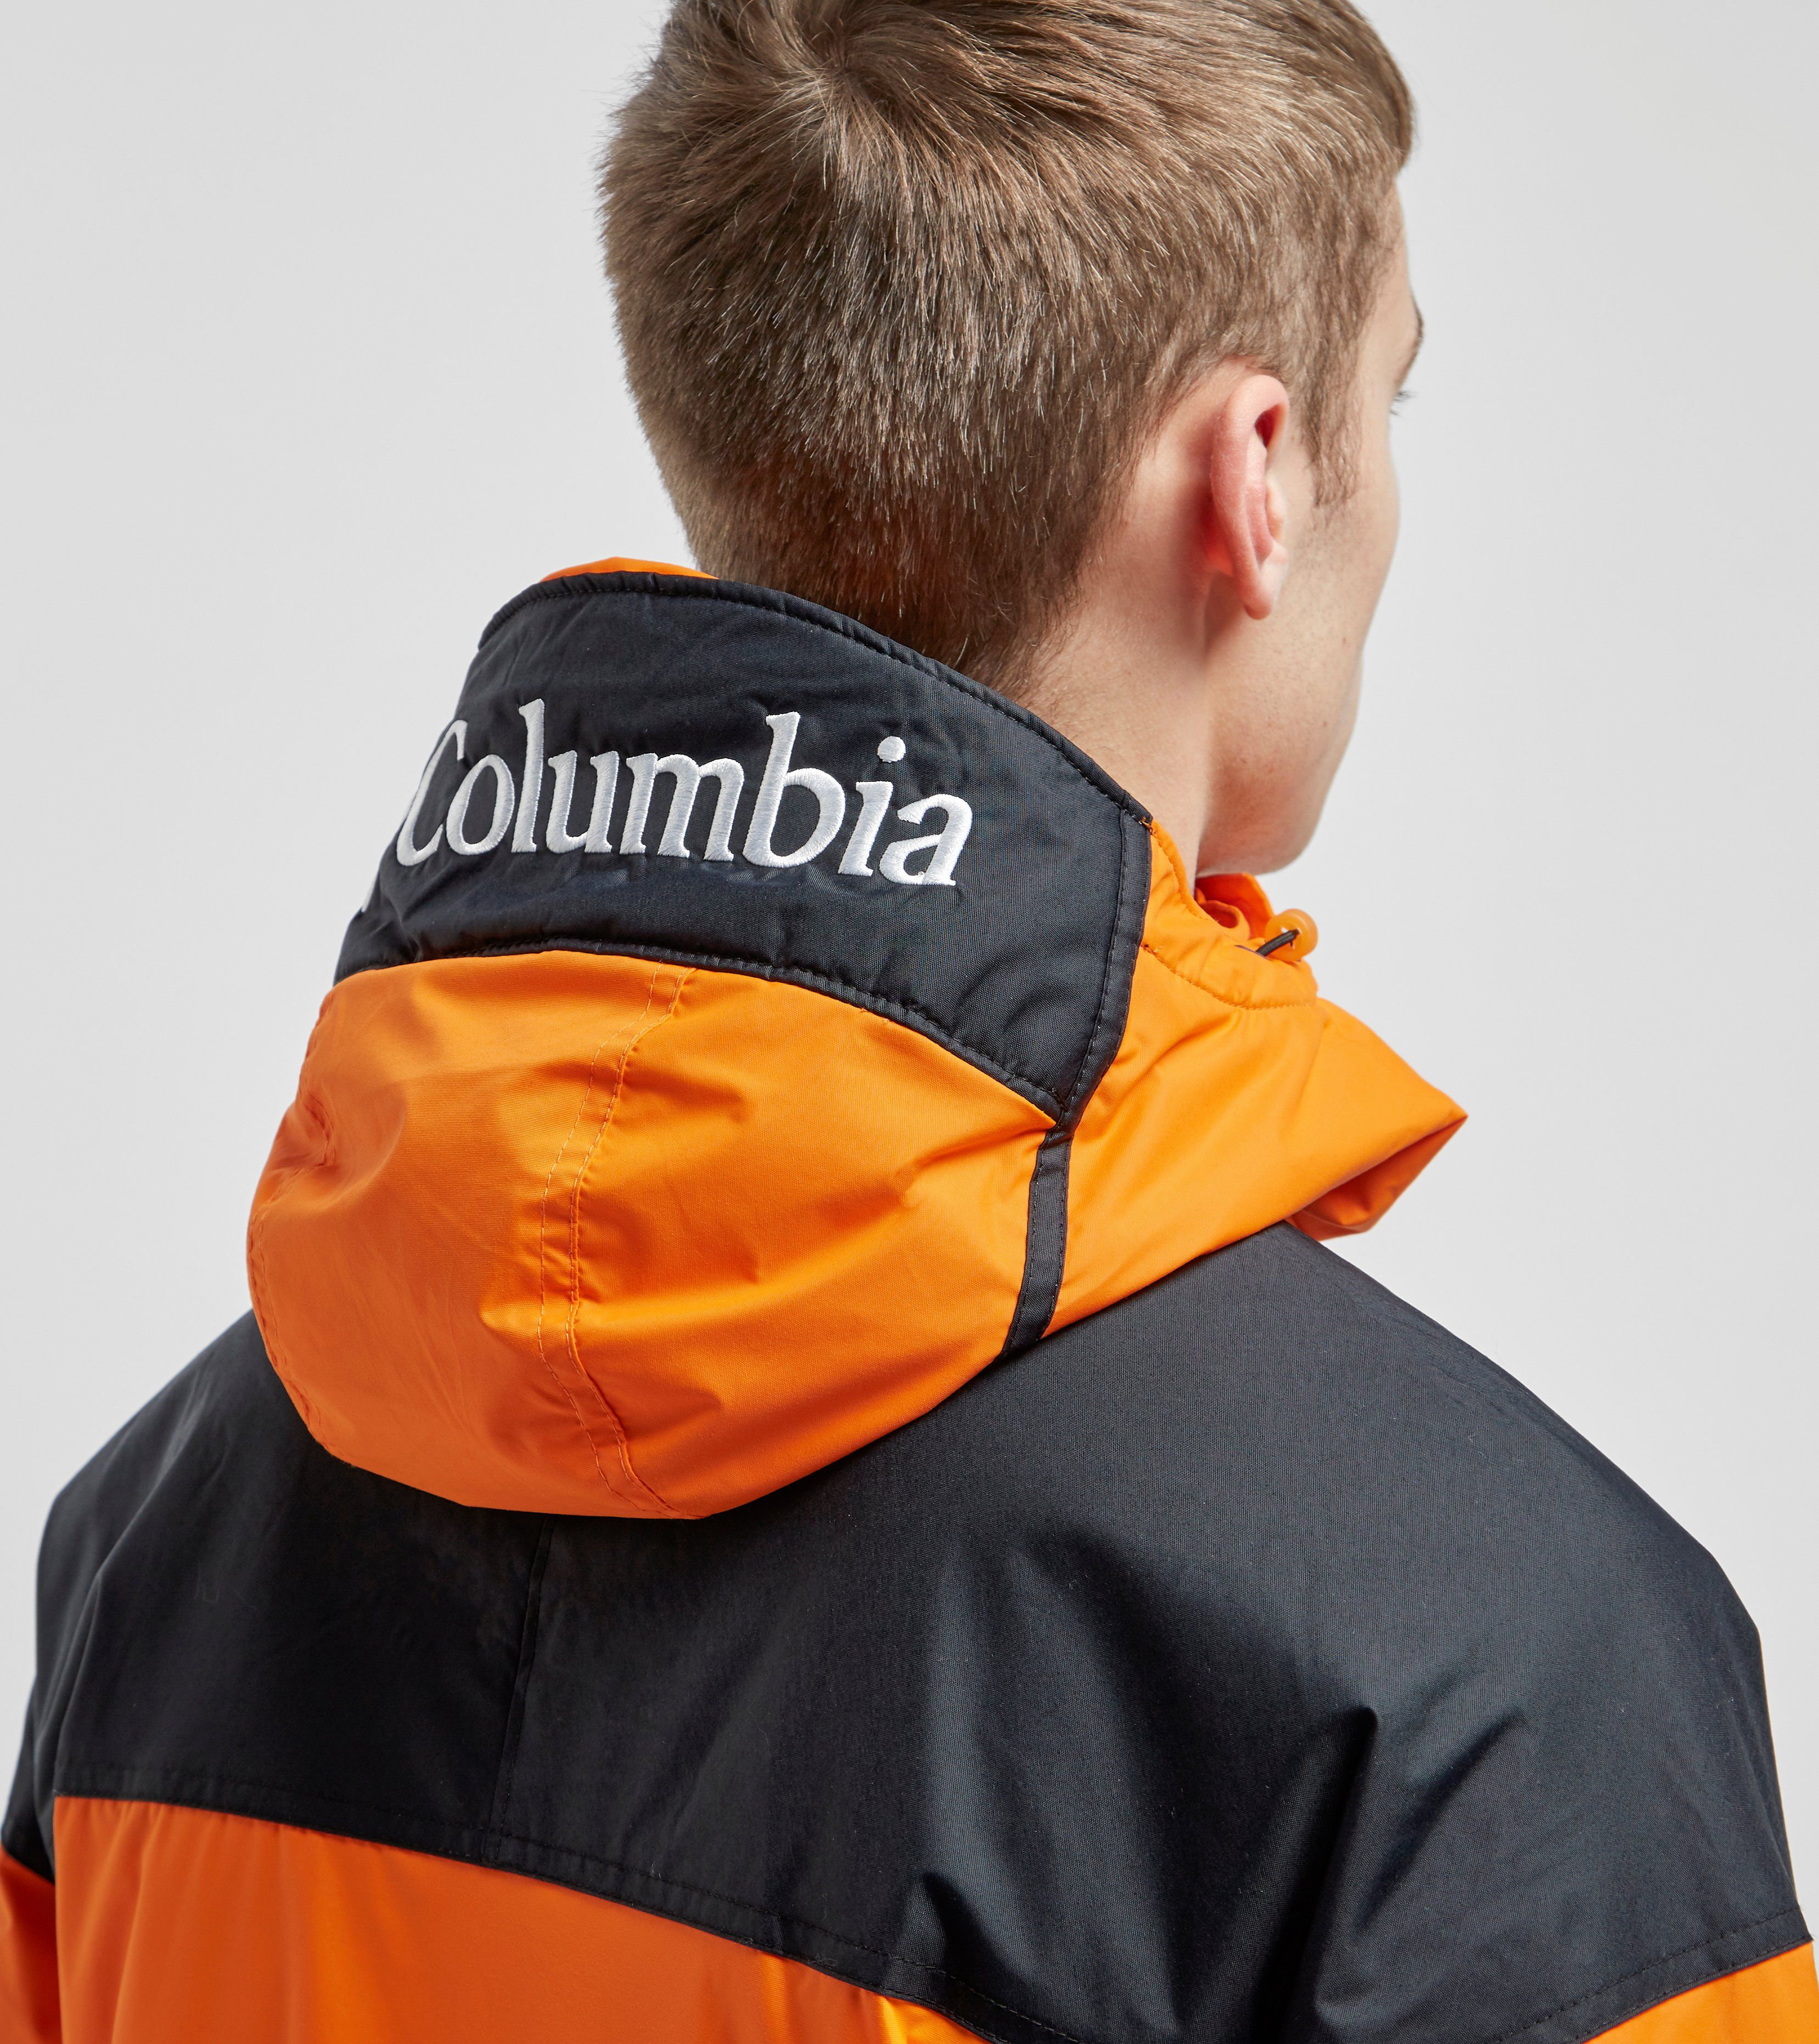 Columbia Challenger Pullover Jacket - size? Exclusive